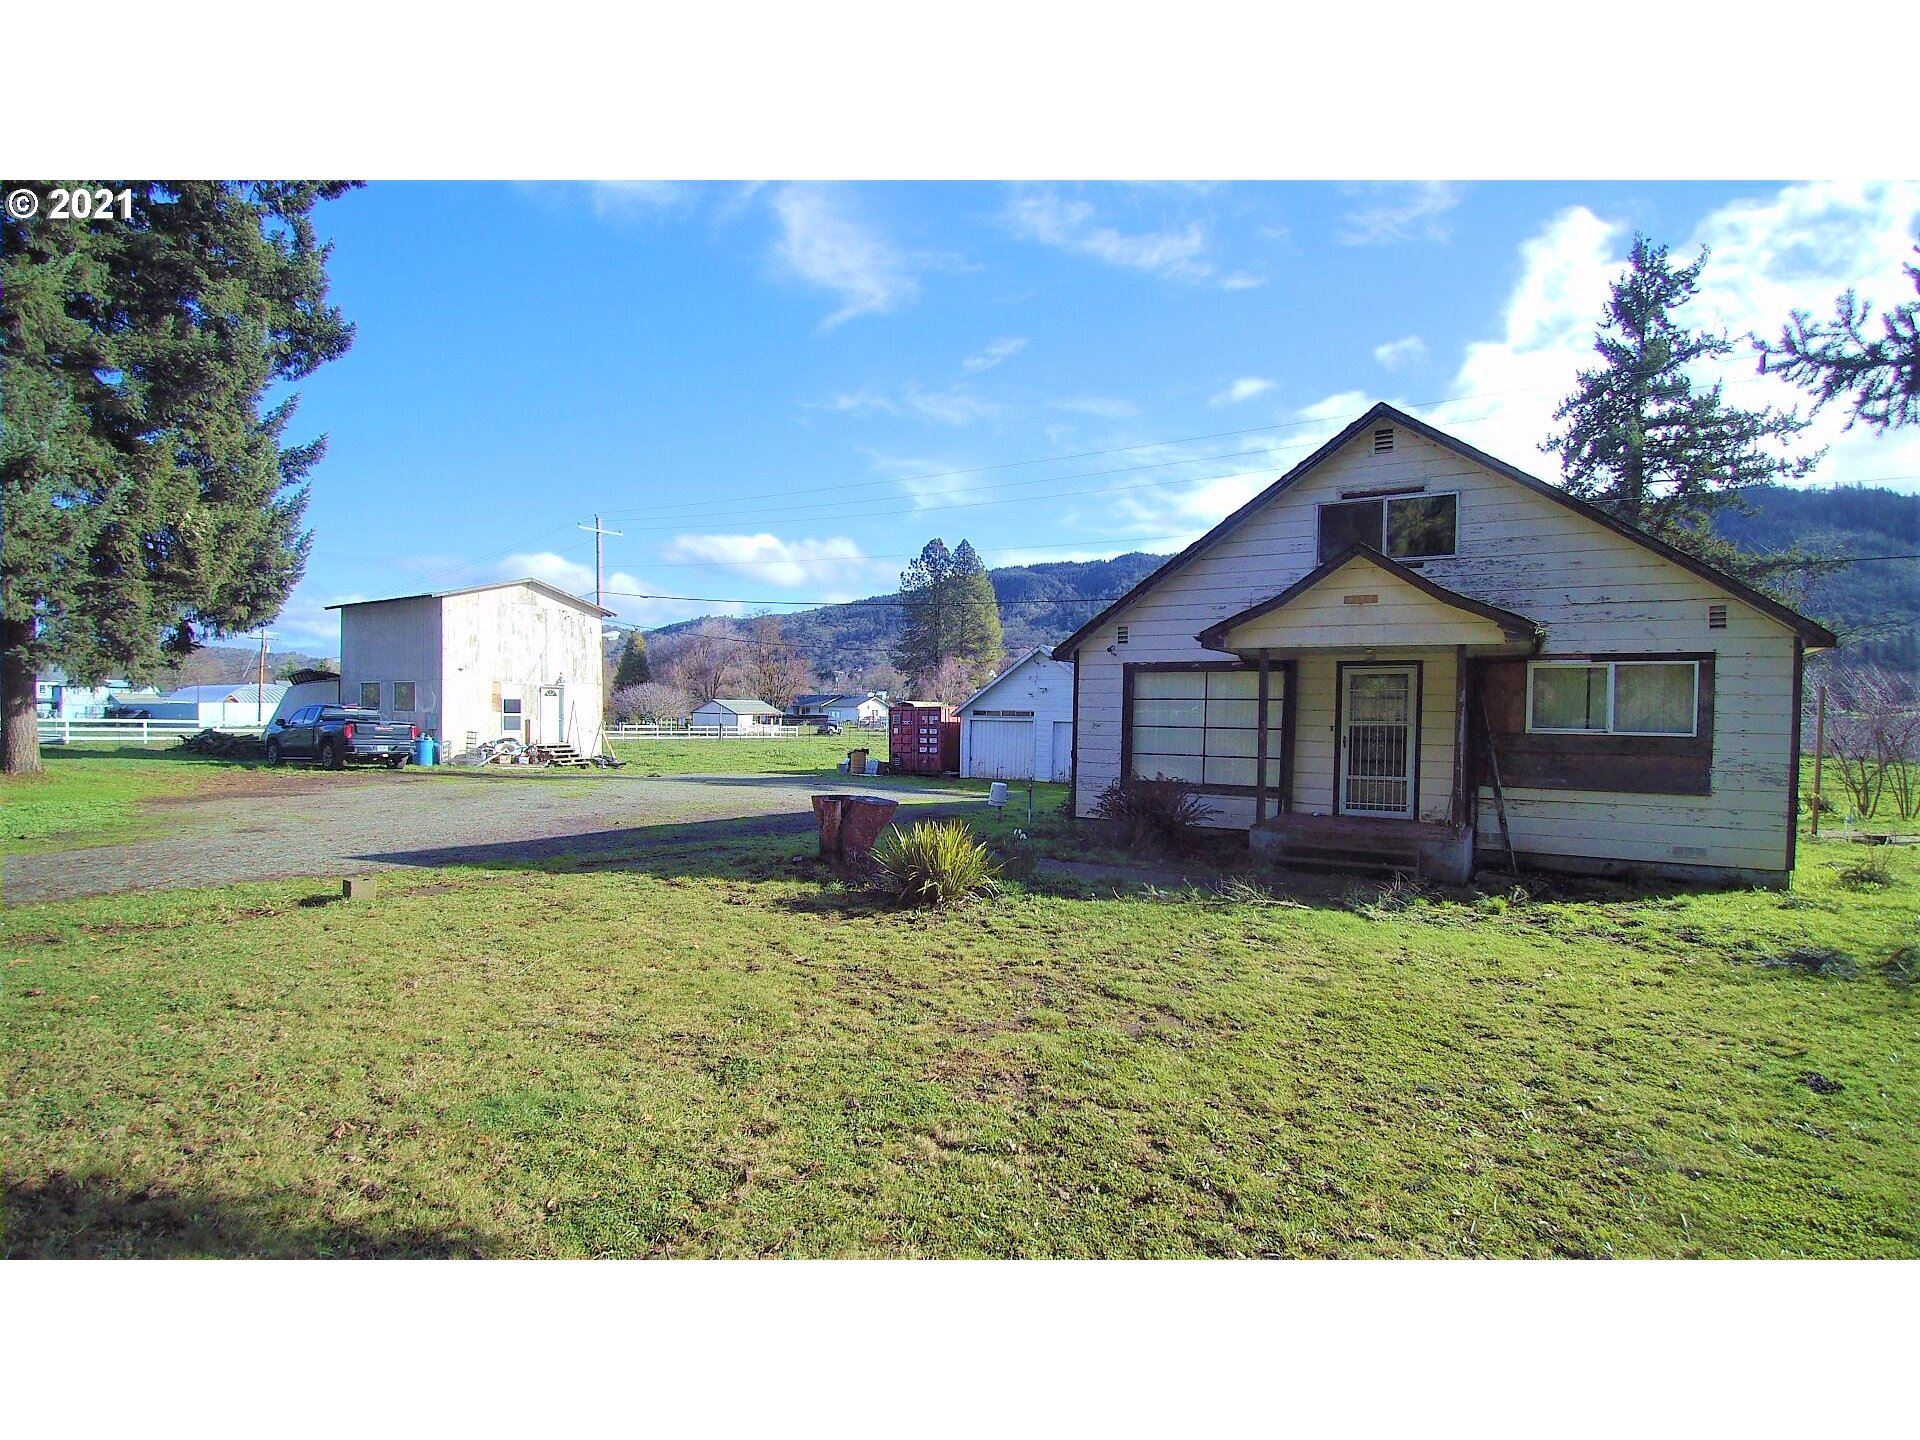 Photo for 772 N OLD PACIFIC HWY, Myrtle Creek, OR 97457 (MLS # 20640744)